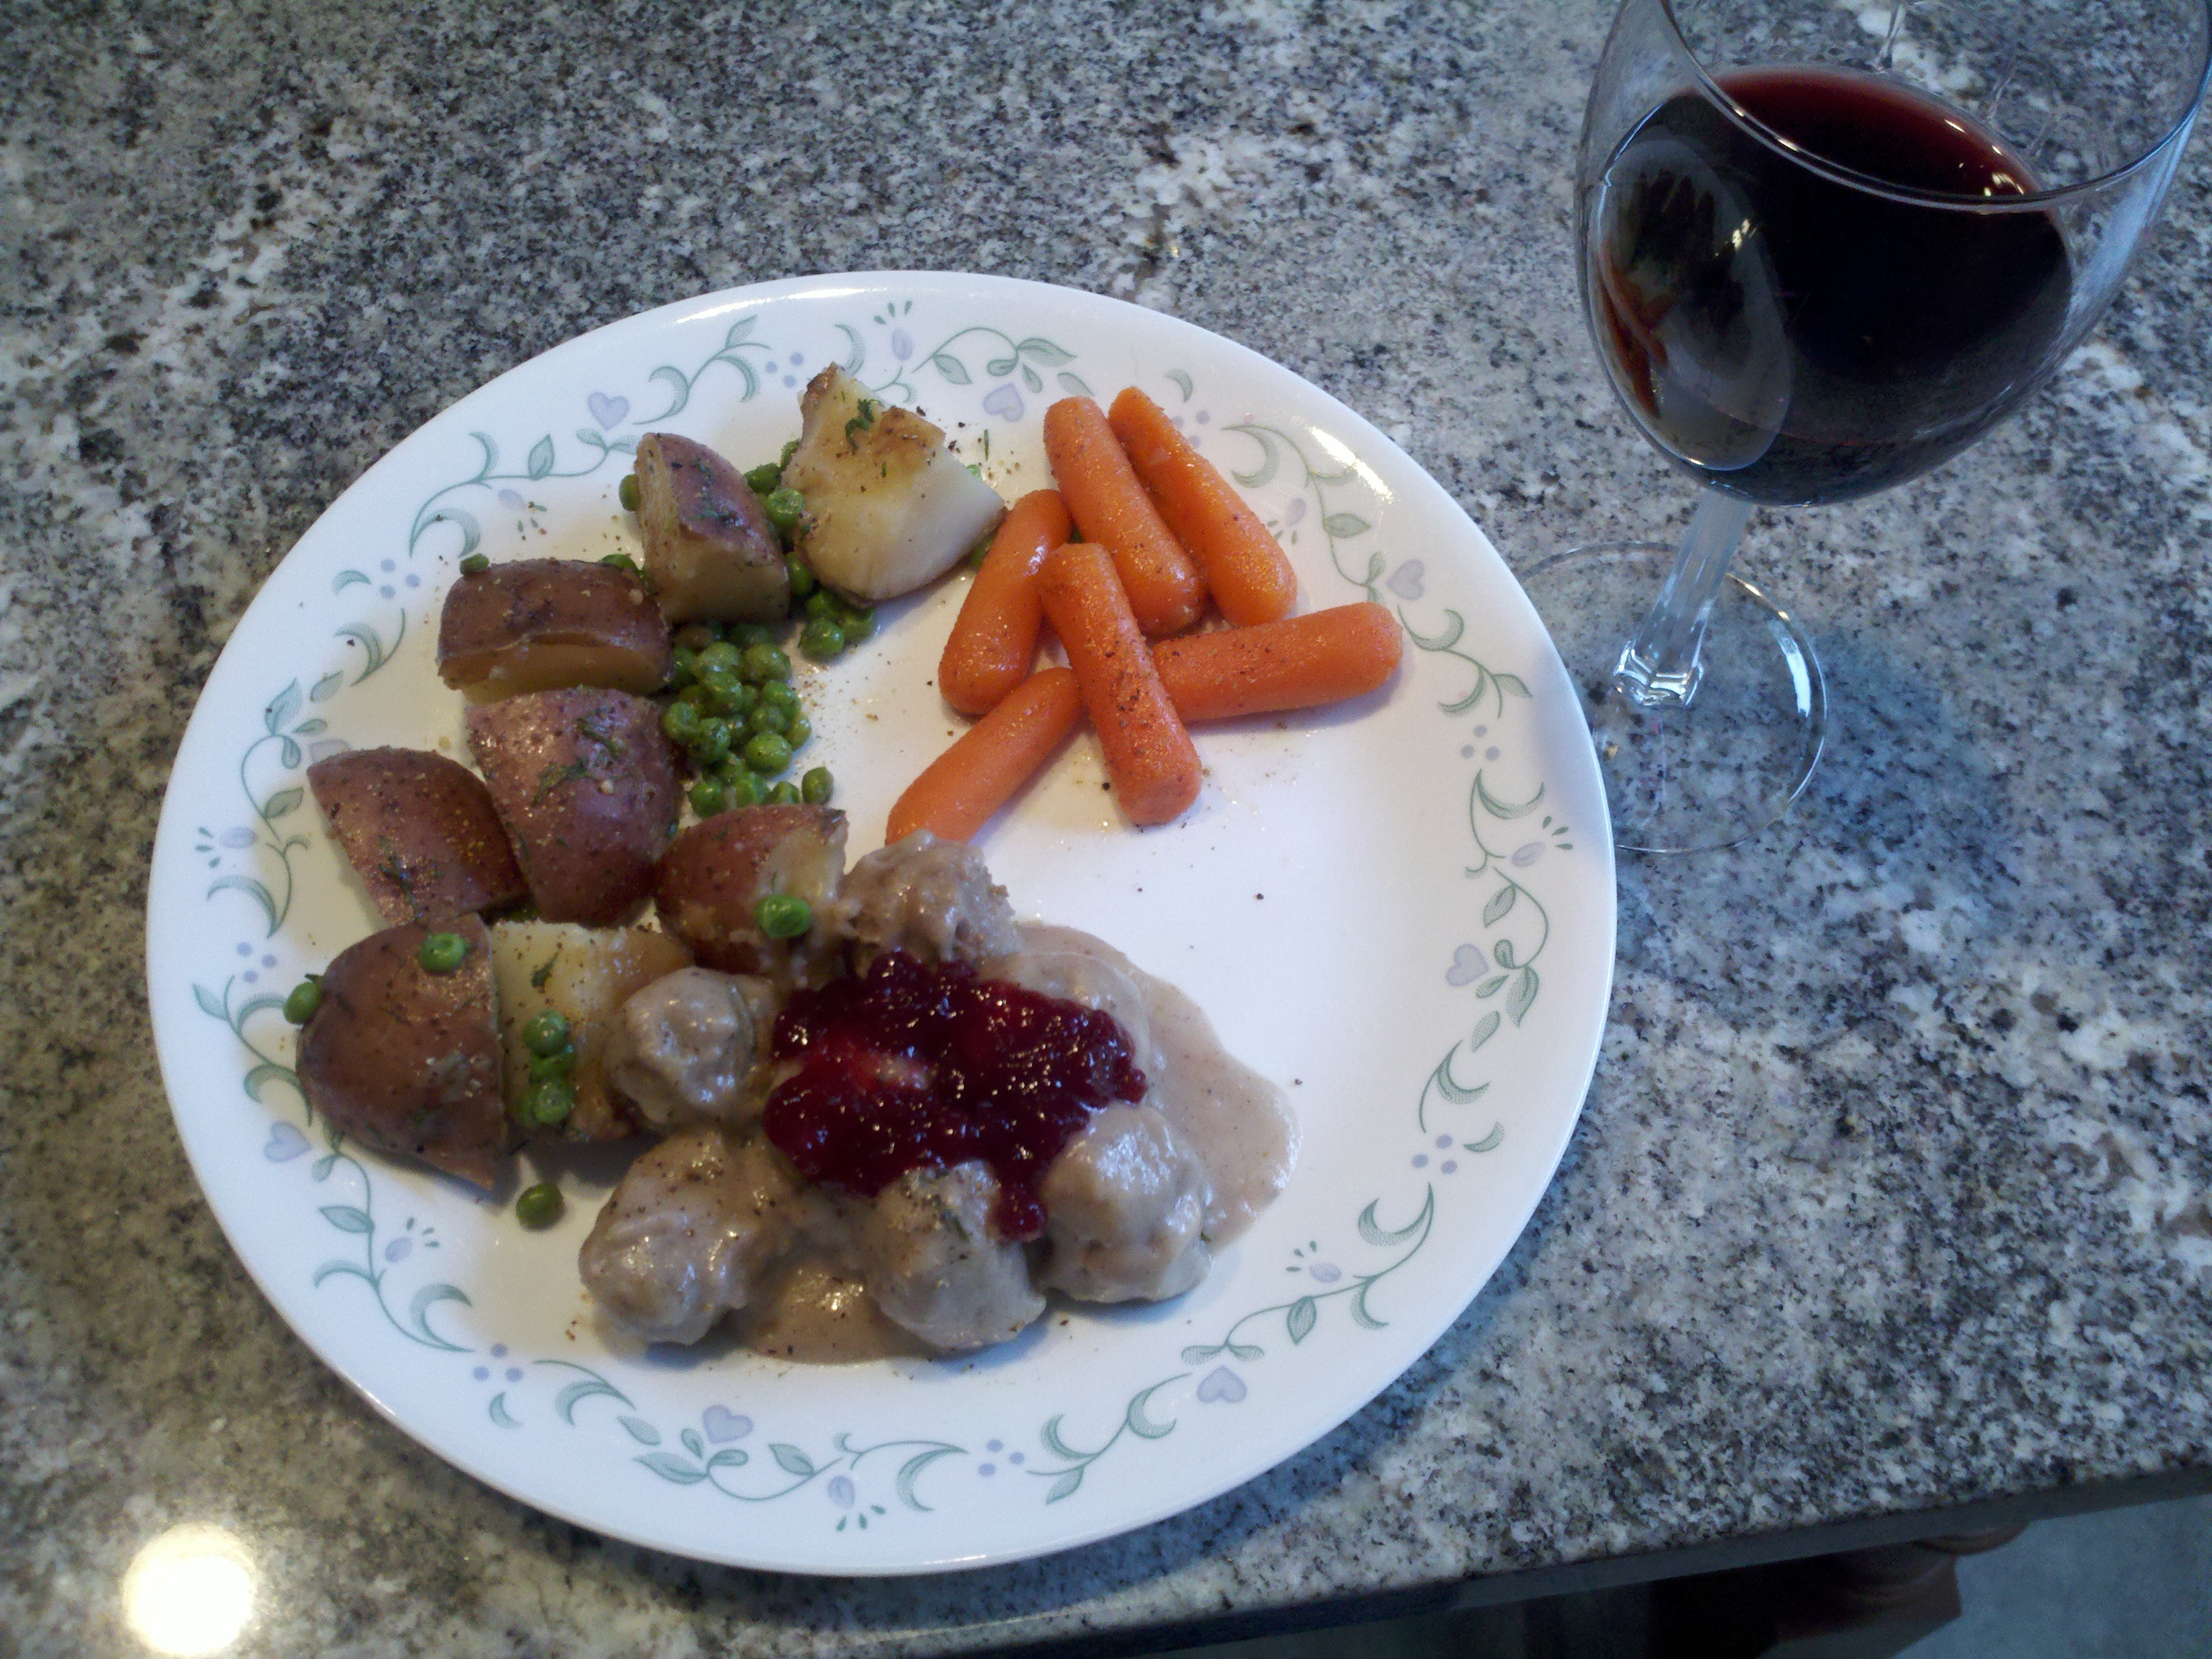 Milford, NH :: Swedish meatballs with lingonberry sauce, carrots and peas, potatoes, and a glass of run wine - great meal.